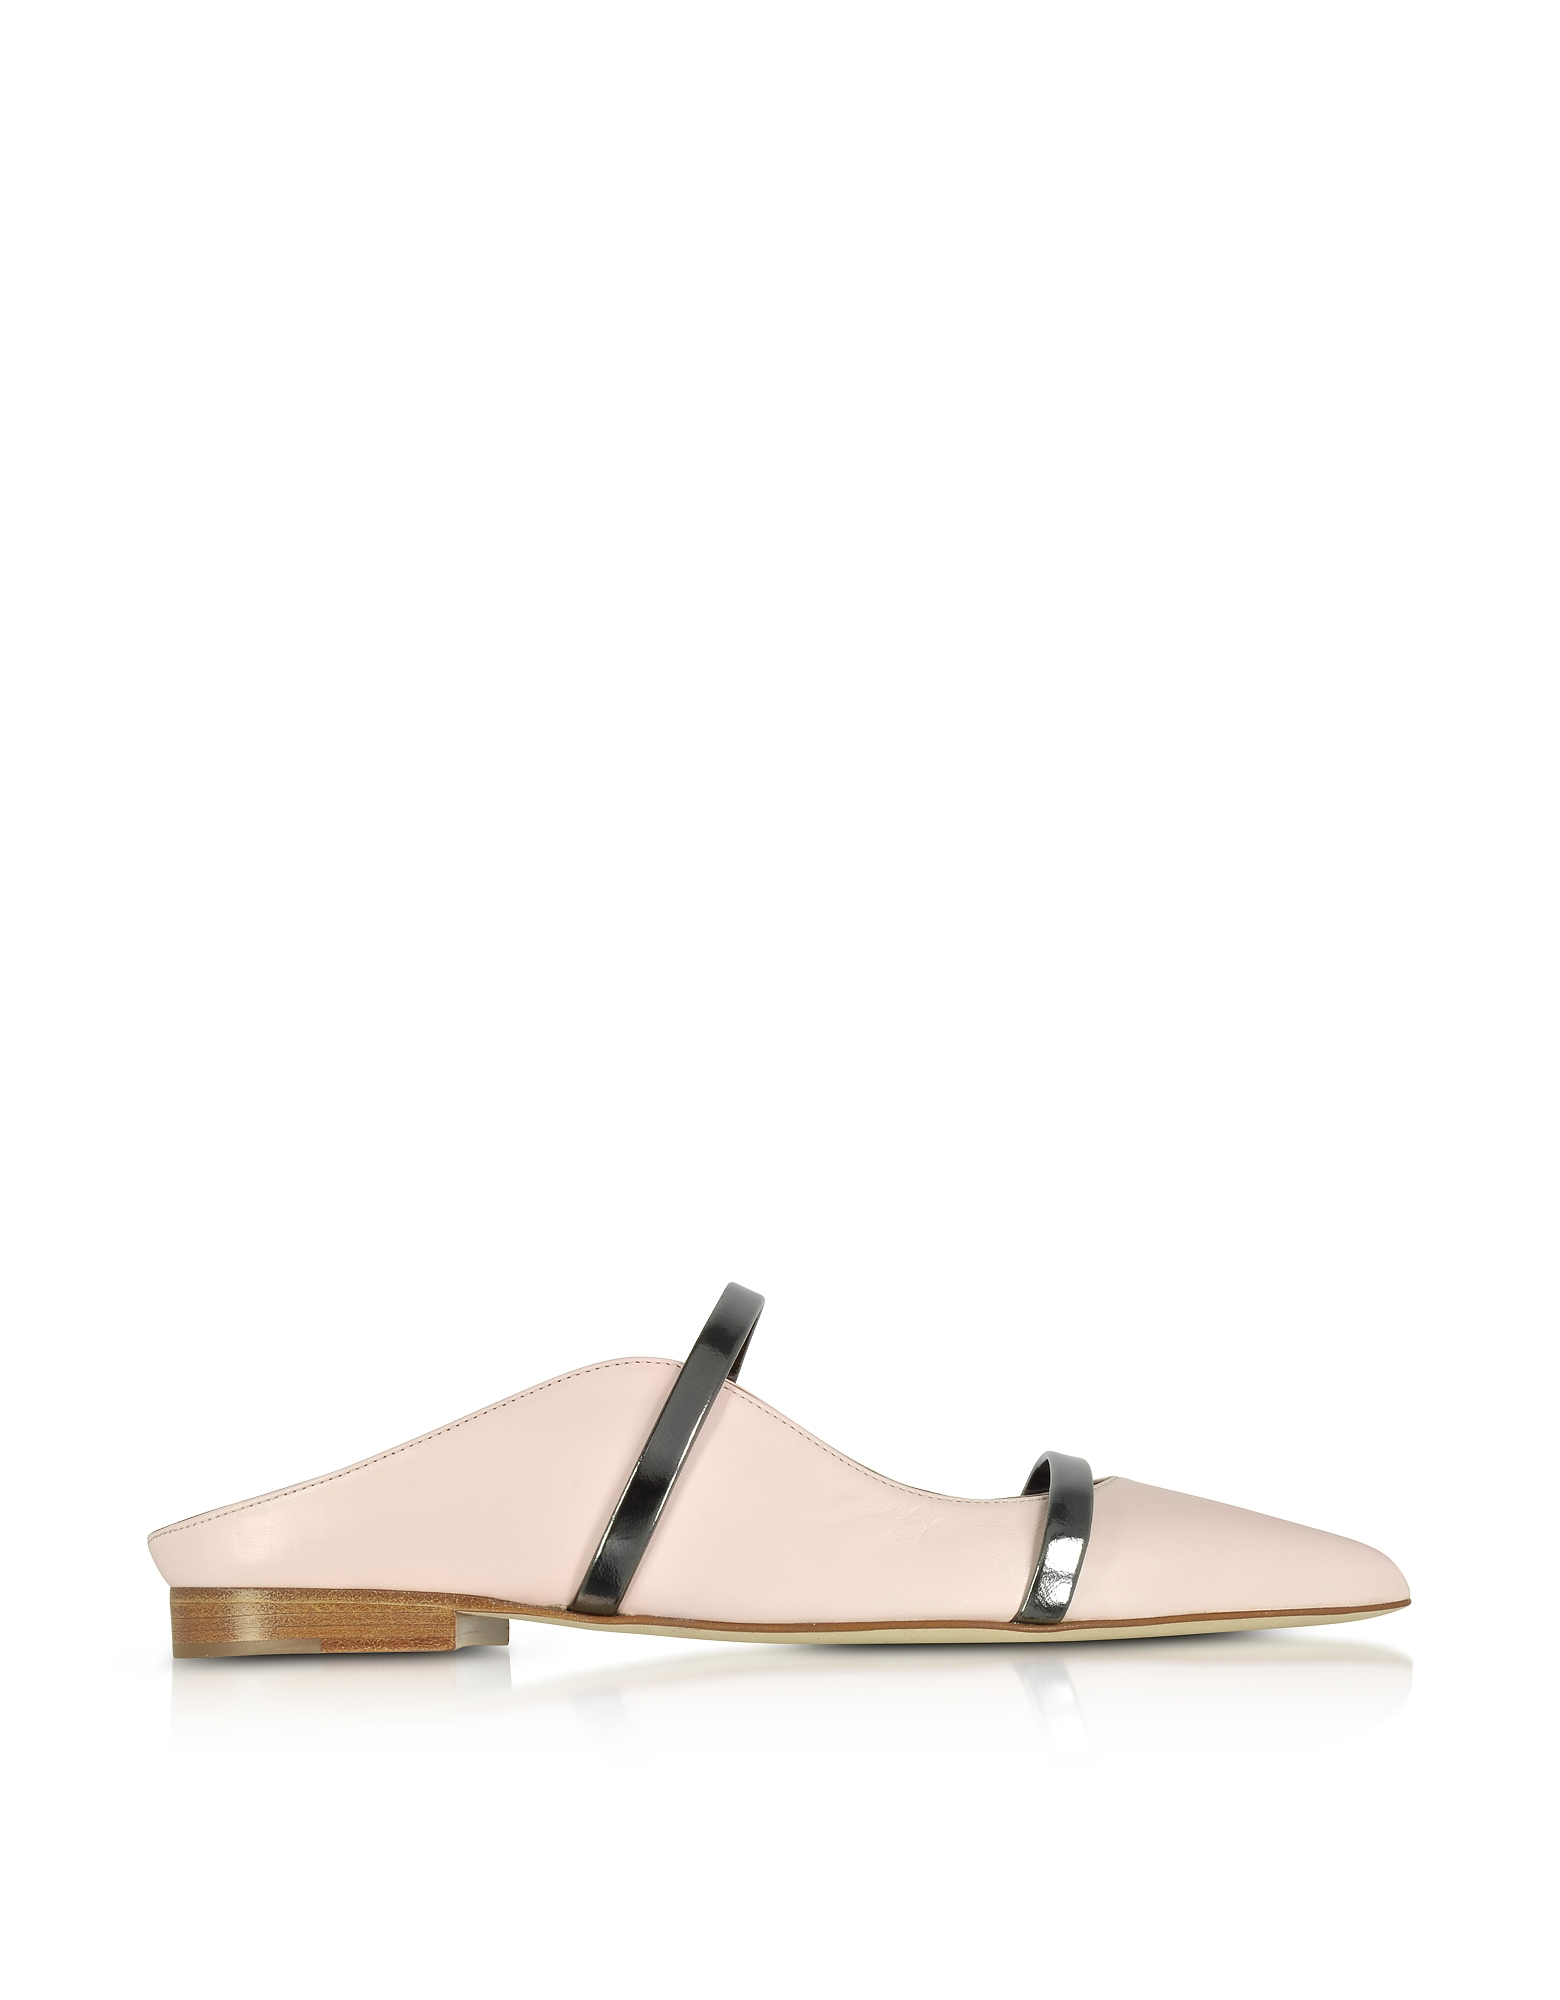 Malone Souliers Shoes, Maureen Flat Pink and Charcoal Nappa Leather Mules